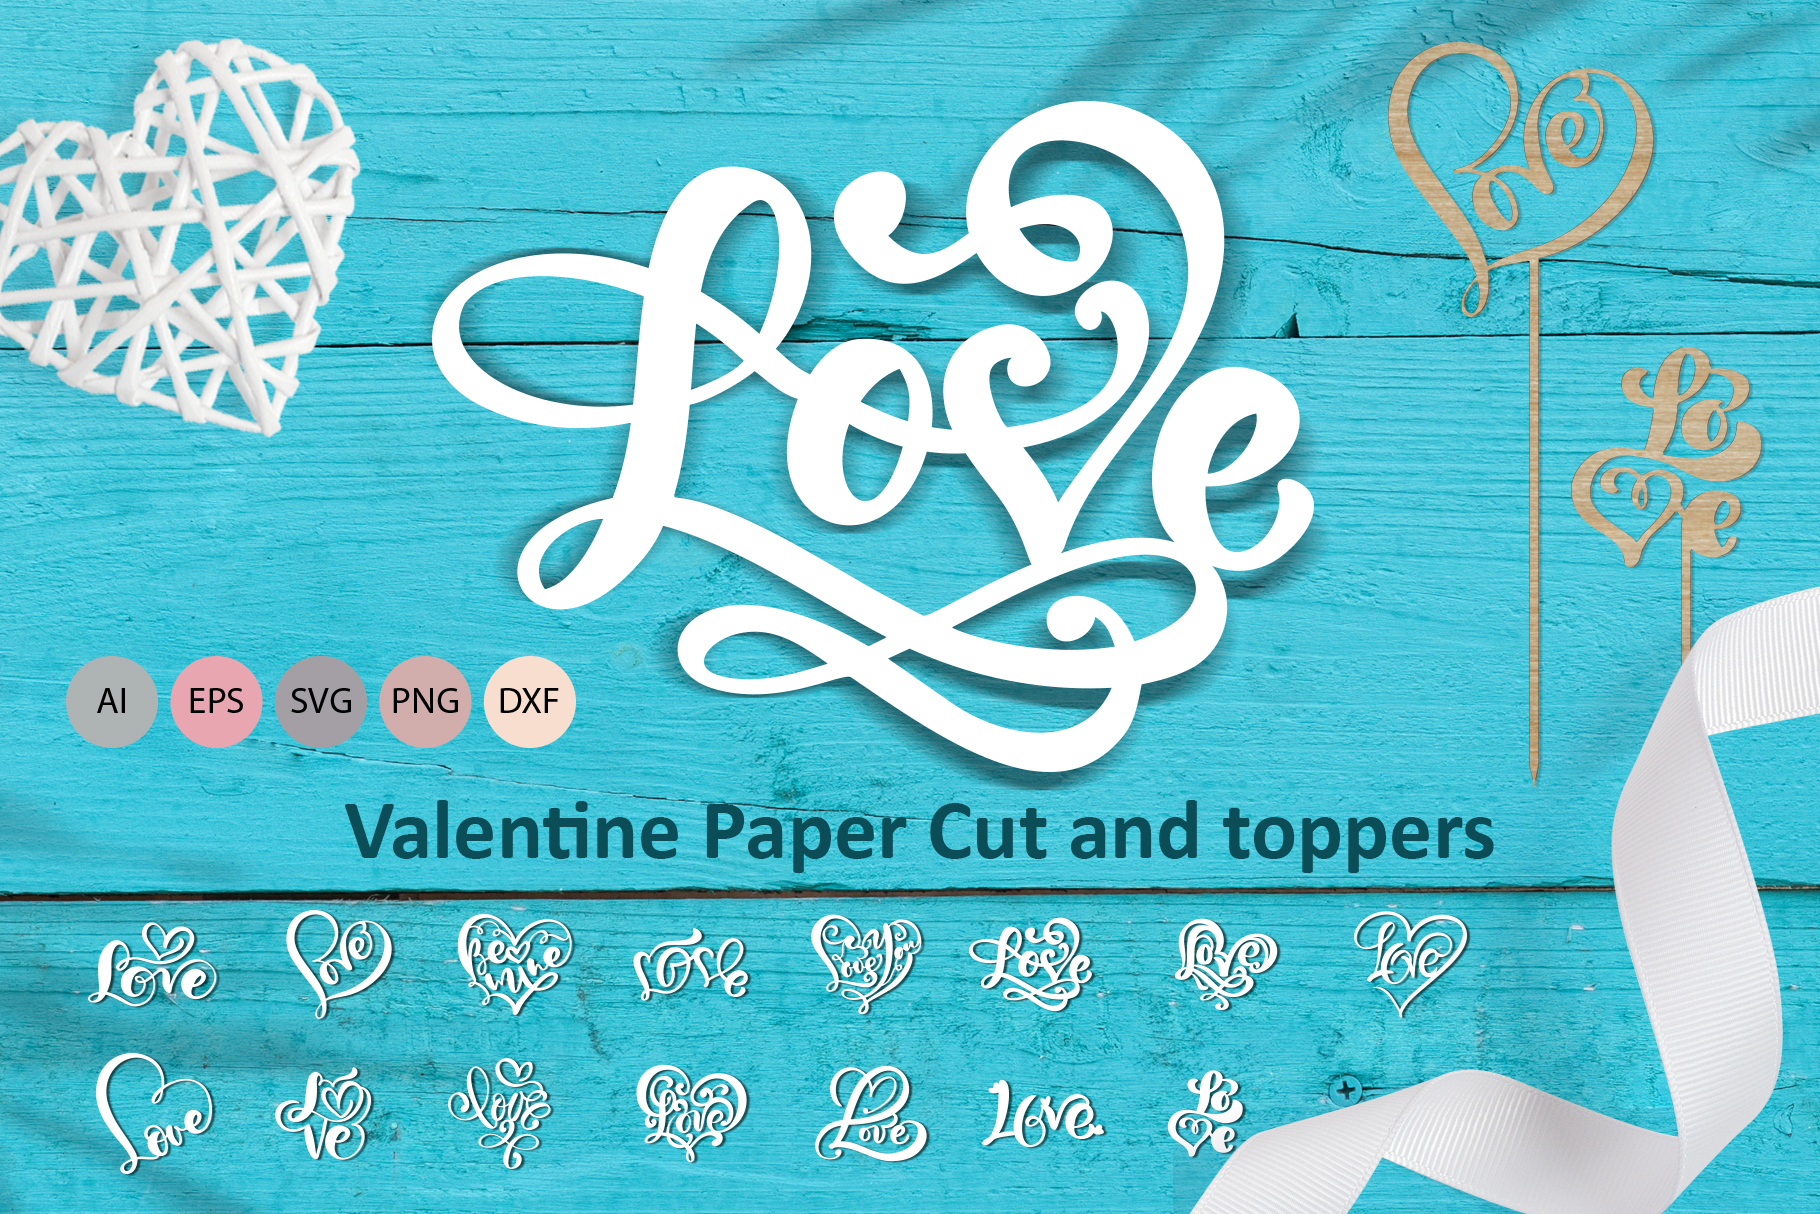 Love Valentine Paper Cut and Toppers SVG File